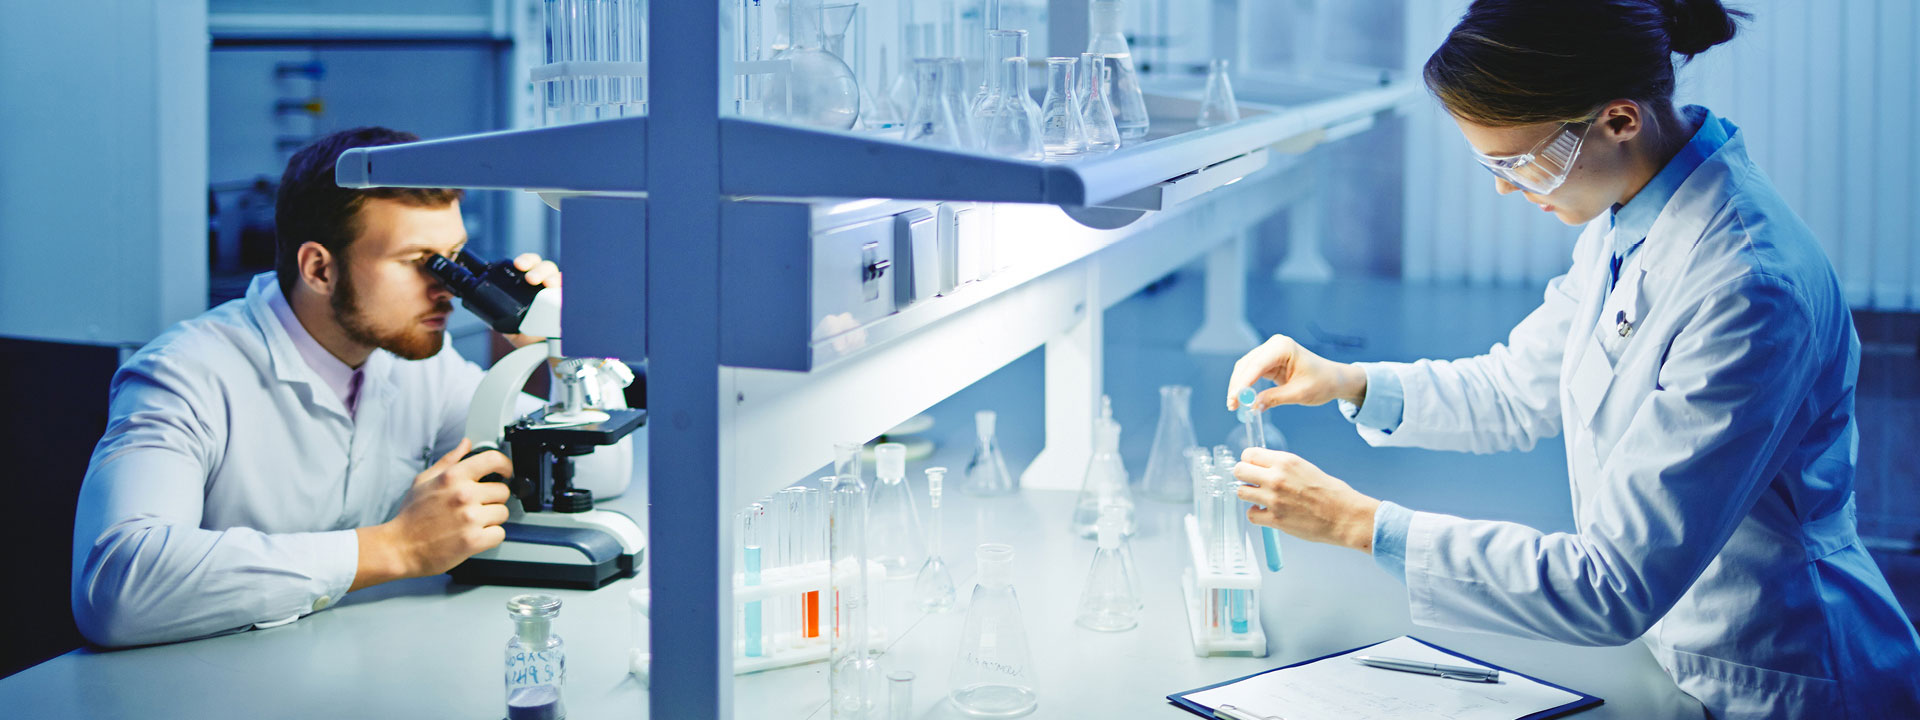 What are Some Popular Biomedical Careers? - Learn.org